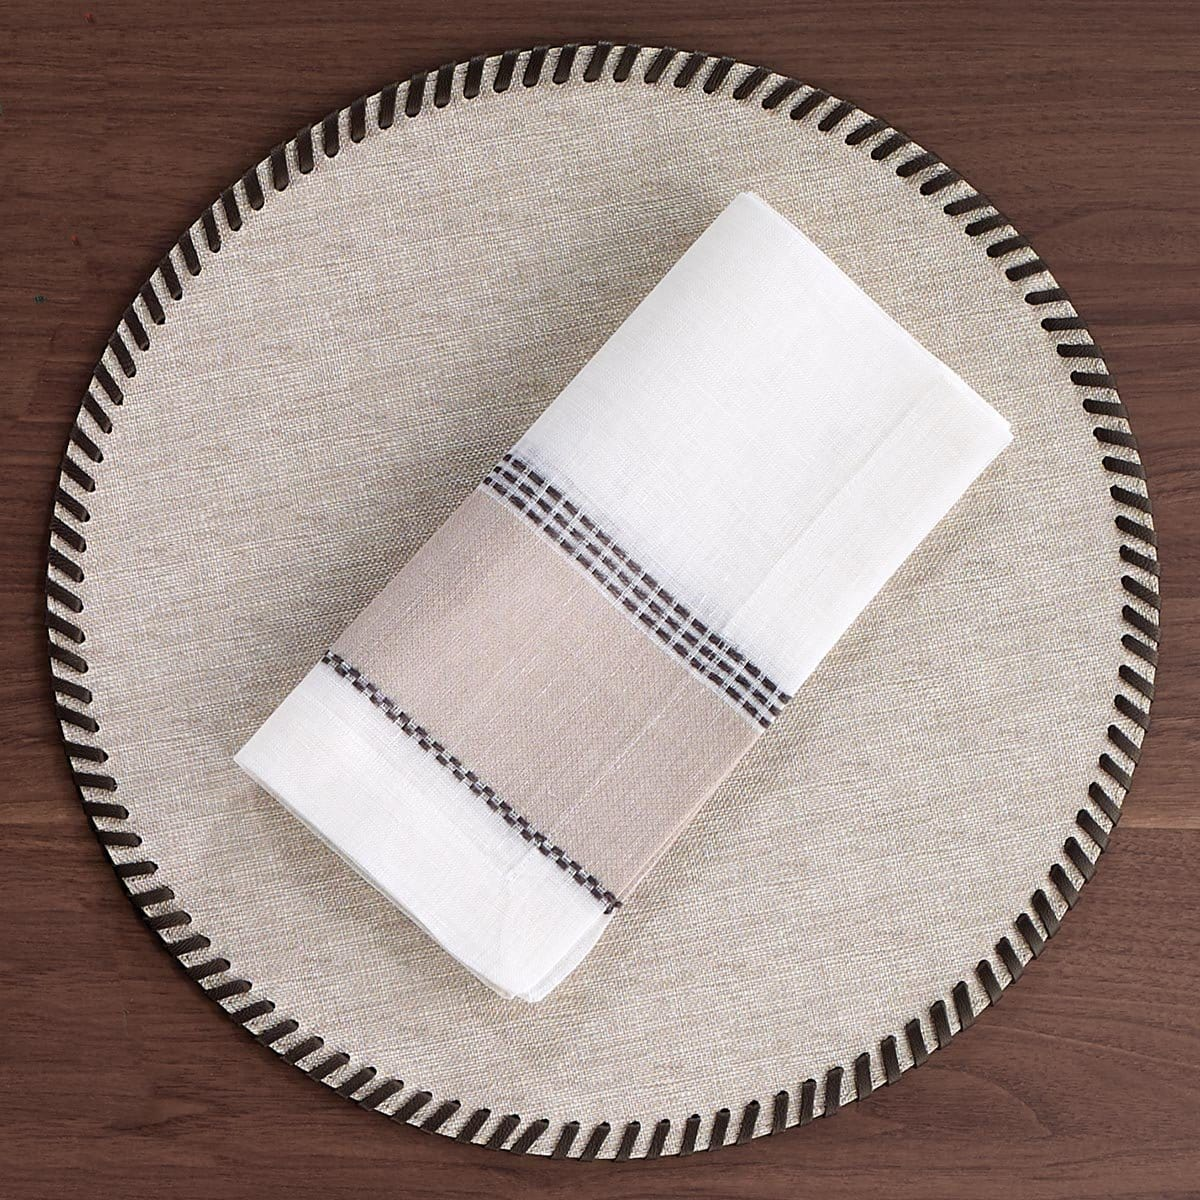 Bodrum Bodrum Whipstitch Placemat - Beige - Set of 4 WHP1300P